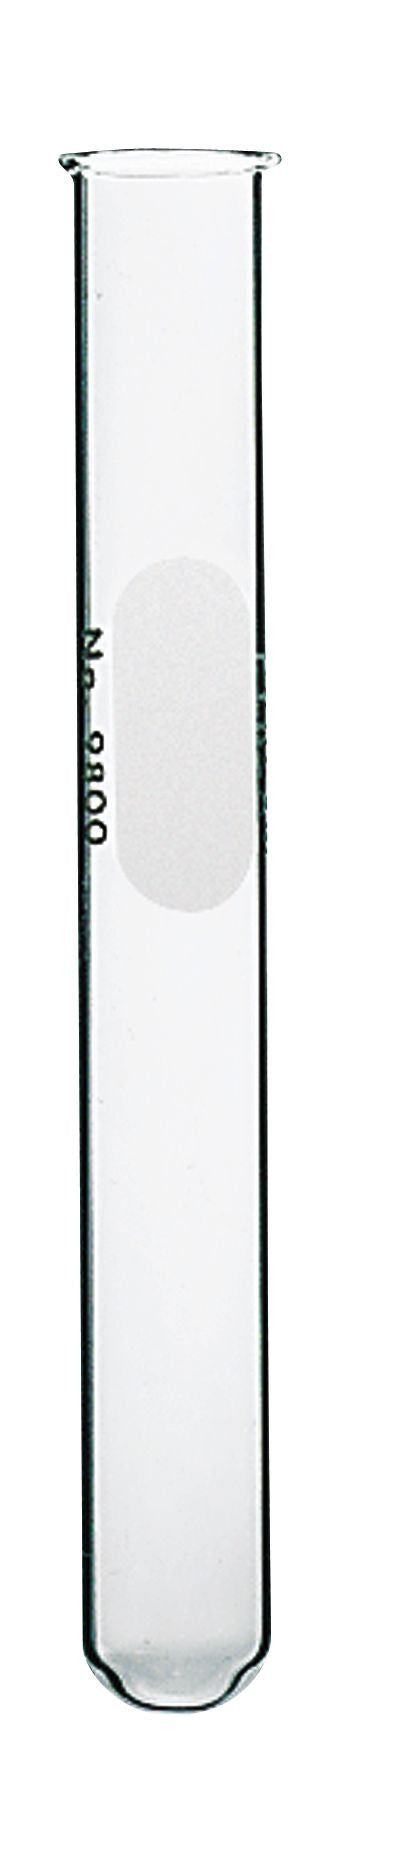 PYREX® 9mL Test Tubes, 13x100mm ~ Glass 6/pk - The Science Shop